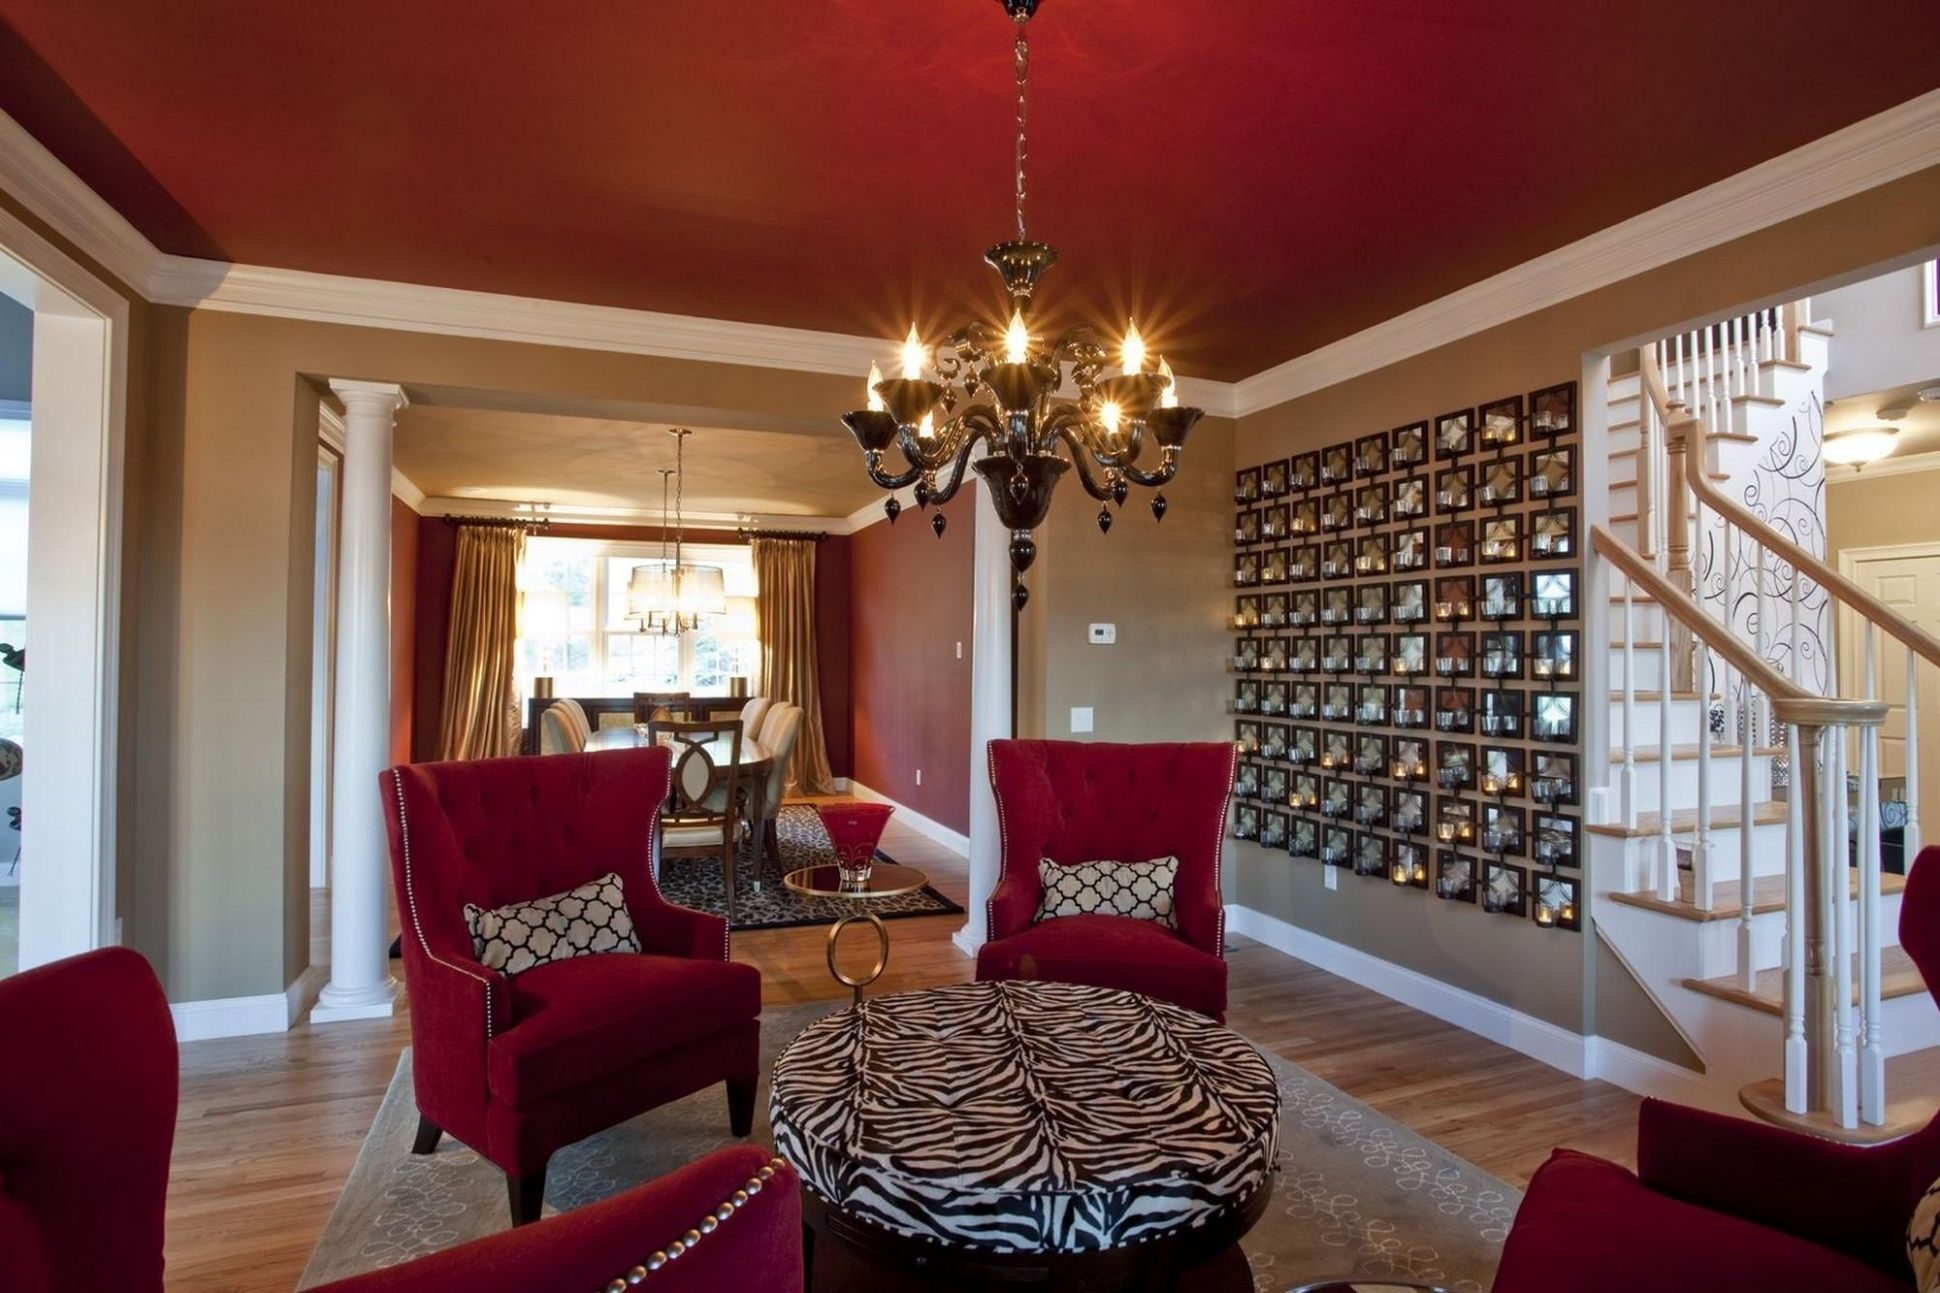 9+ Enchanting Zebra Interior Decorating Ideas That Abound With ..